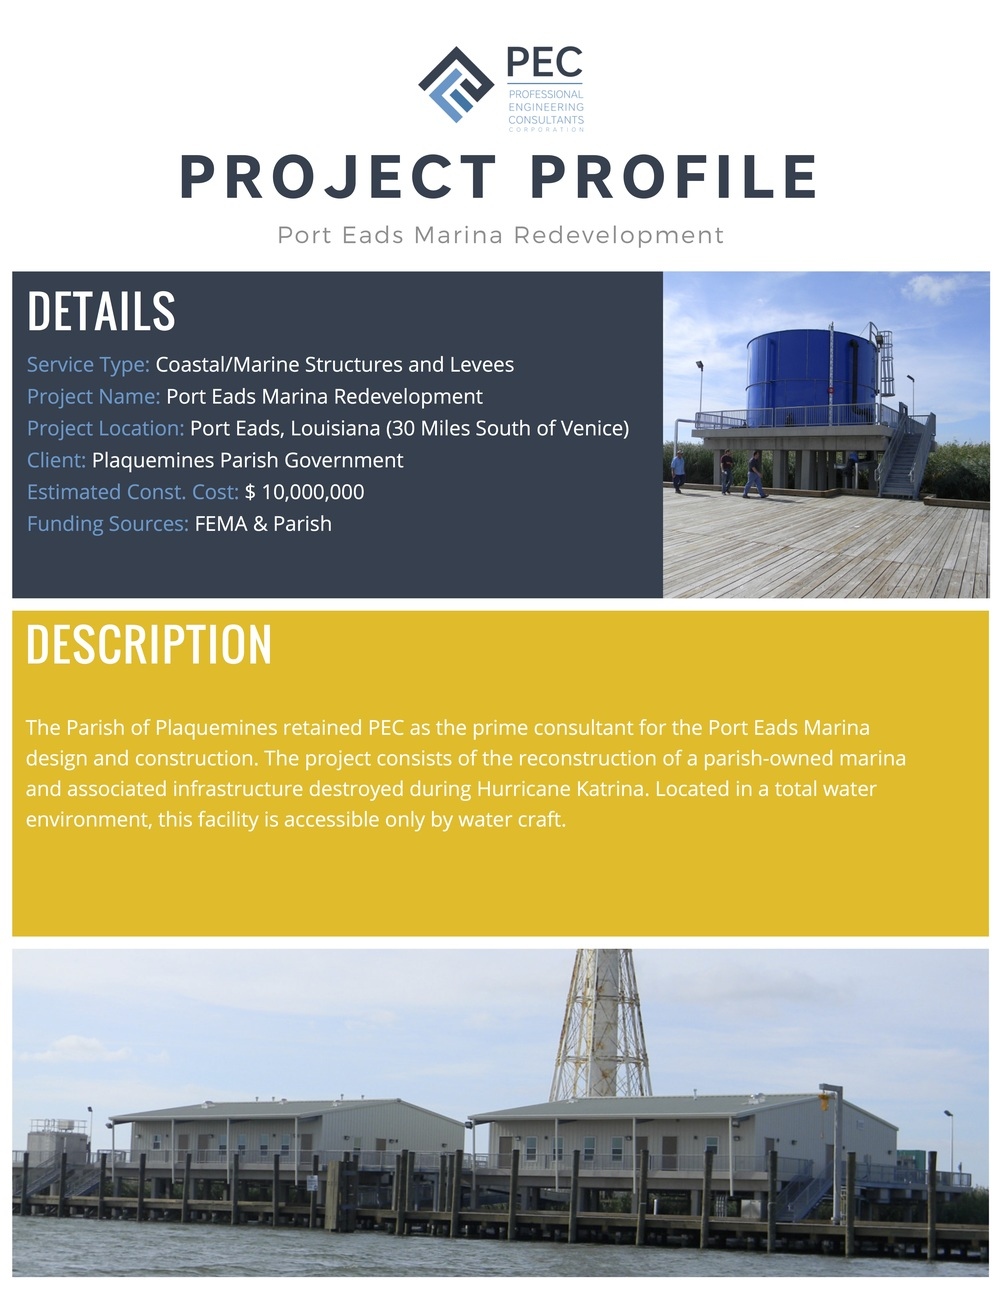 Project Profile_ Port Eads Marina Redevelopment FINAL.jpg